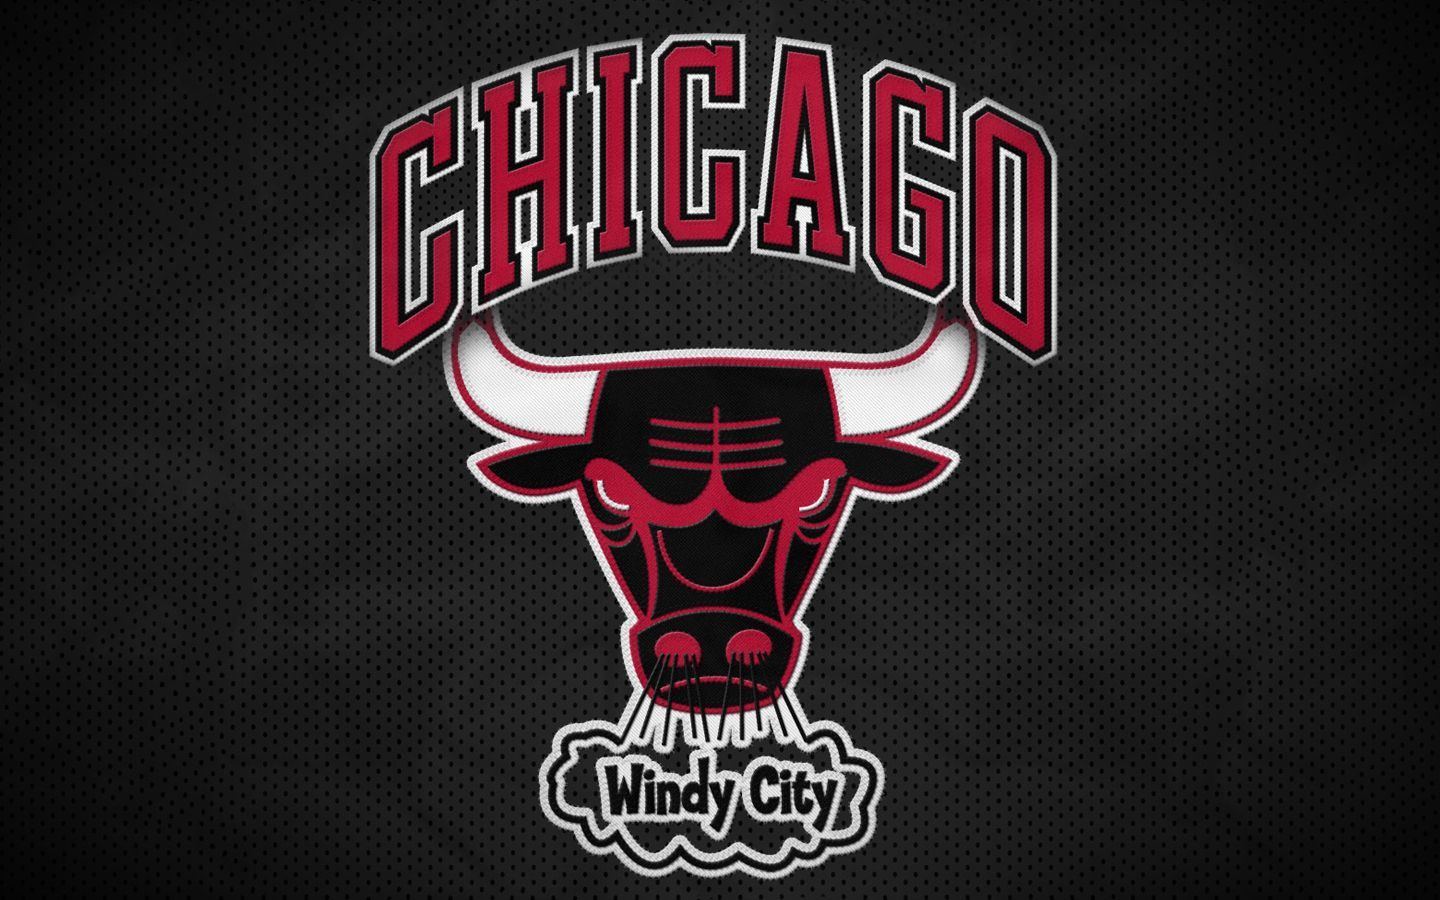 Chicago Bulls Wallpaper Free